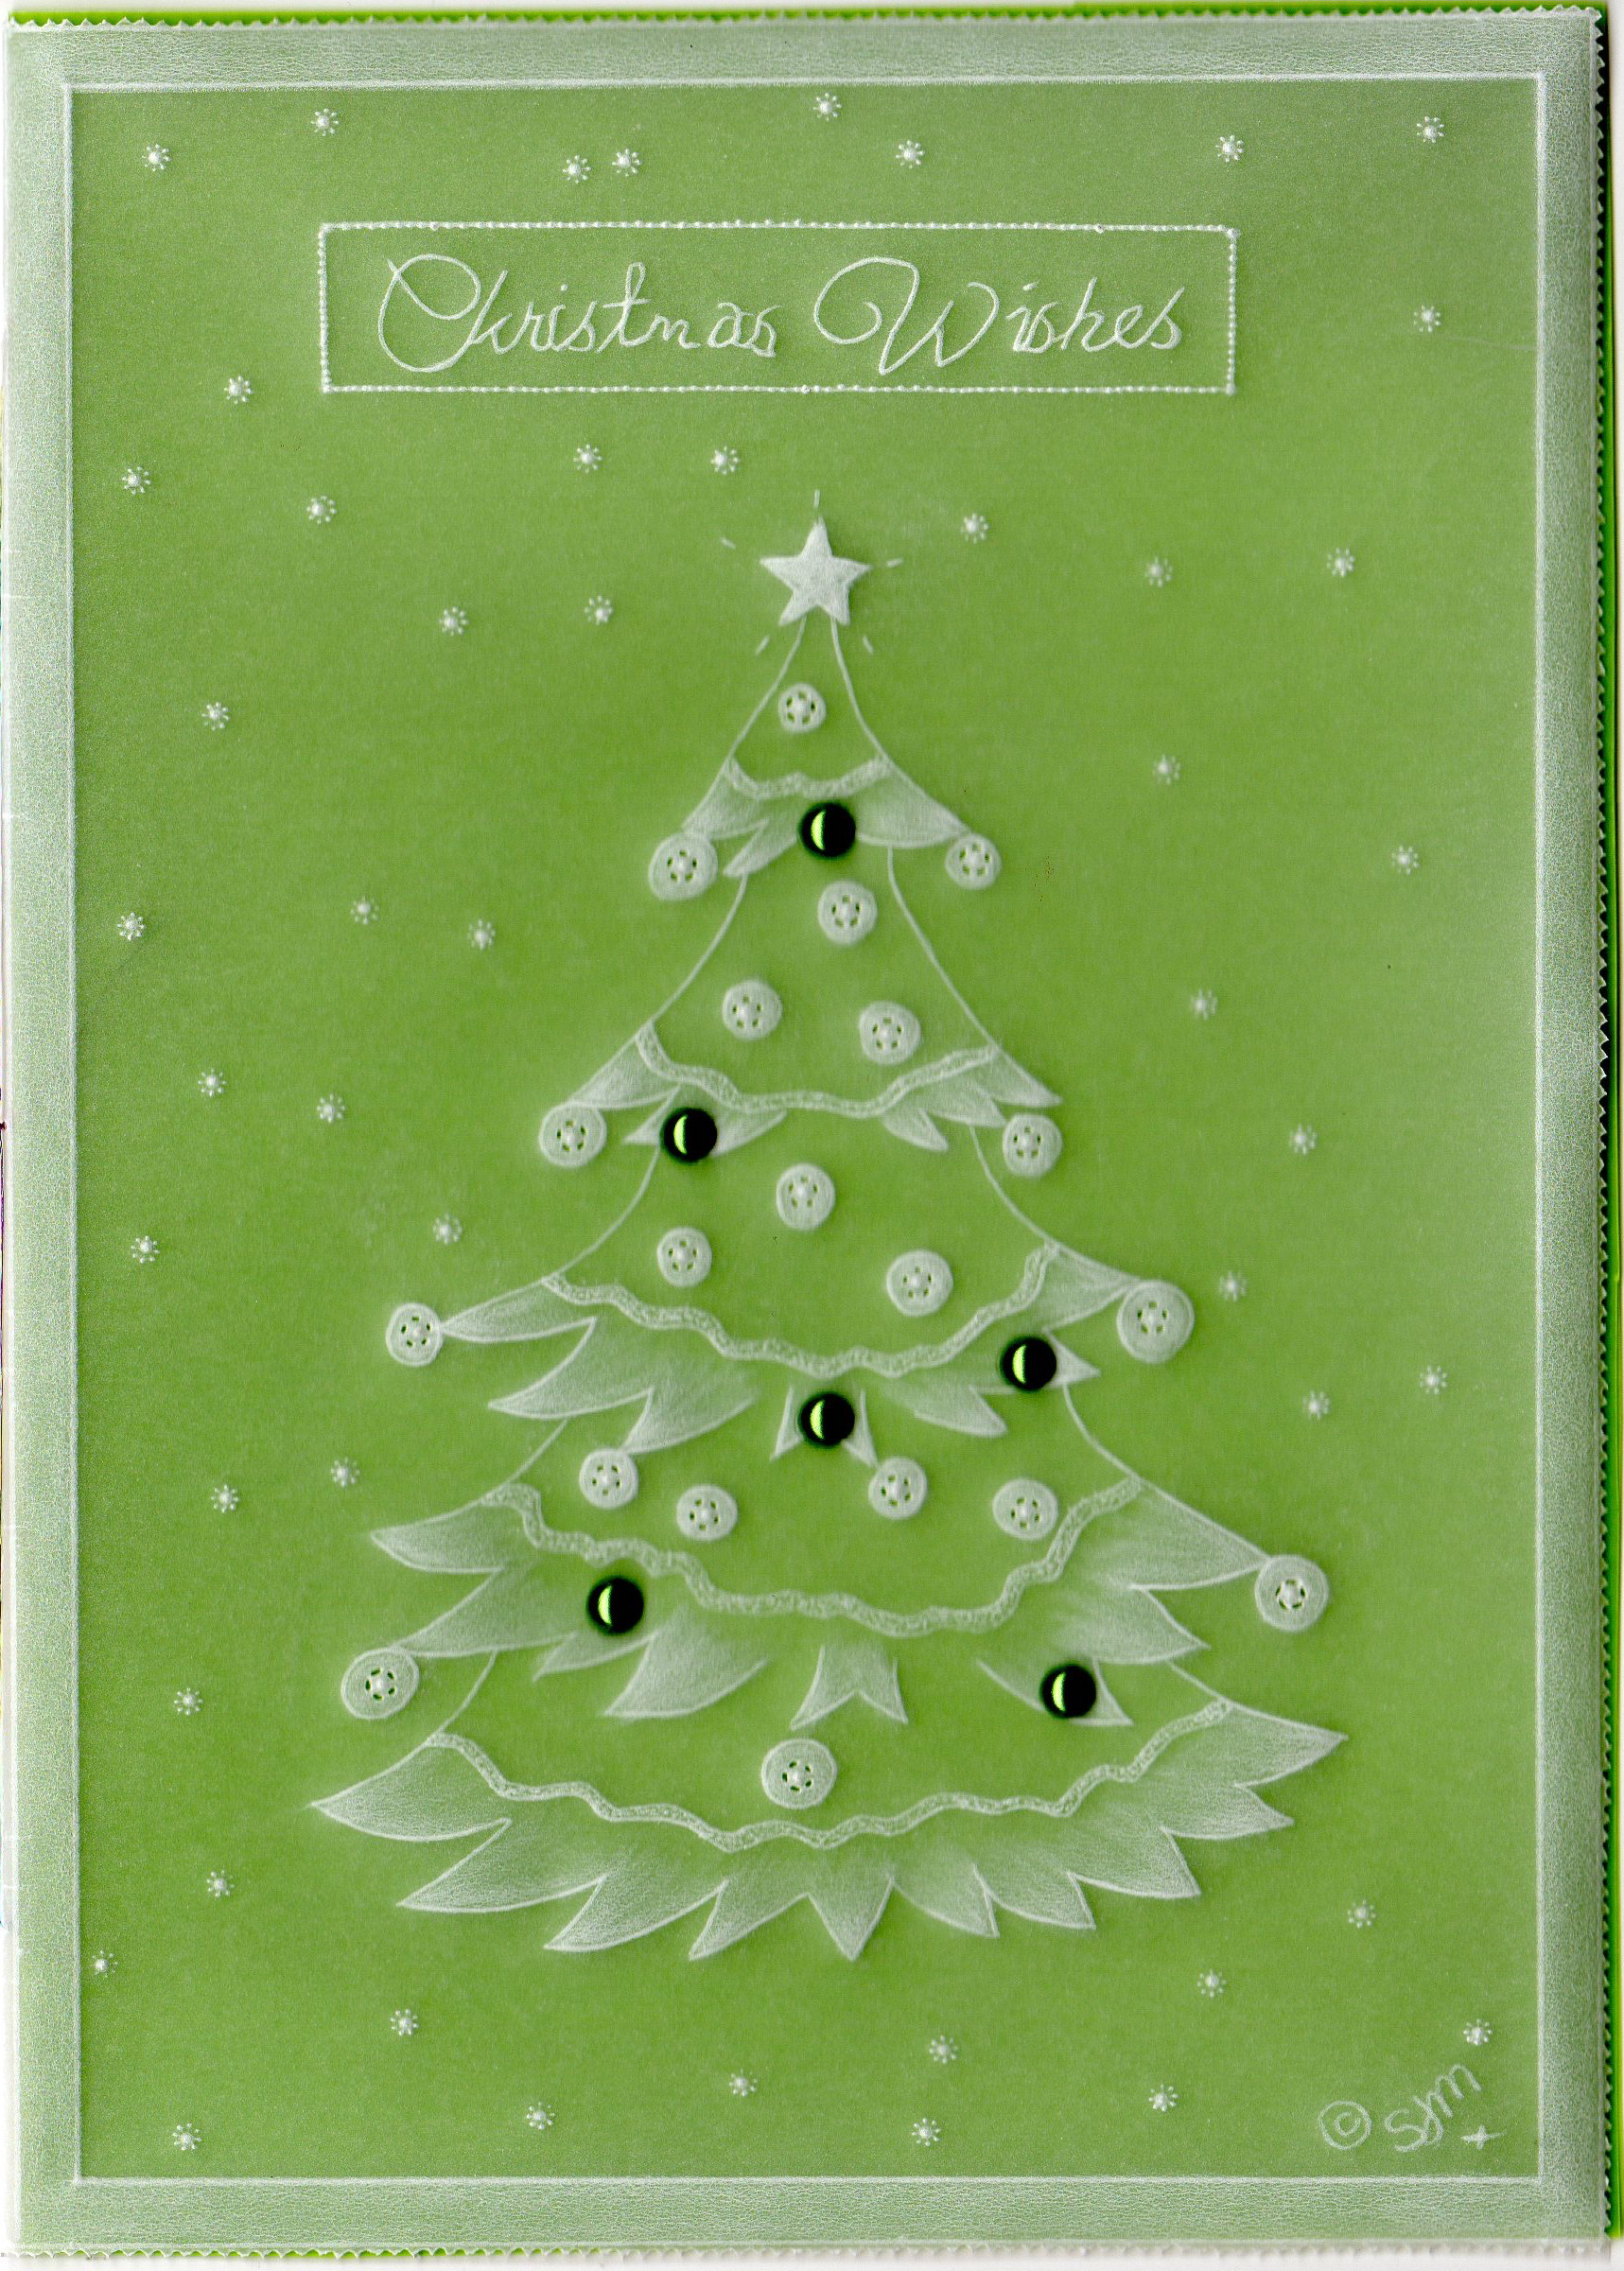 Christmas Greeting Card Making.Sharon Mills Christmas Wishes Sjmpattern01 A Card Pattern Download Cards Card Making Downloads